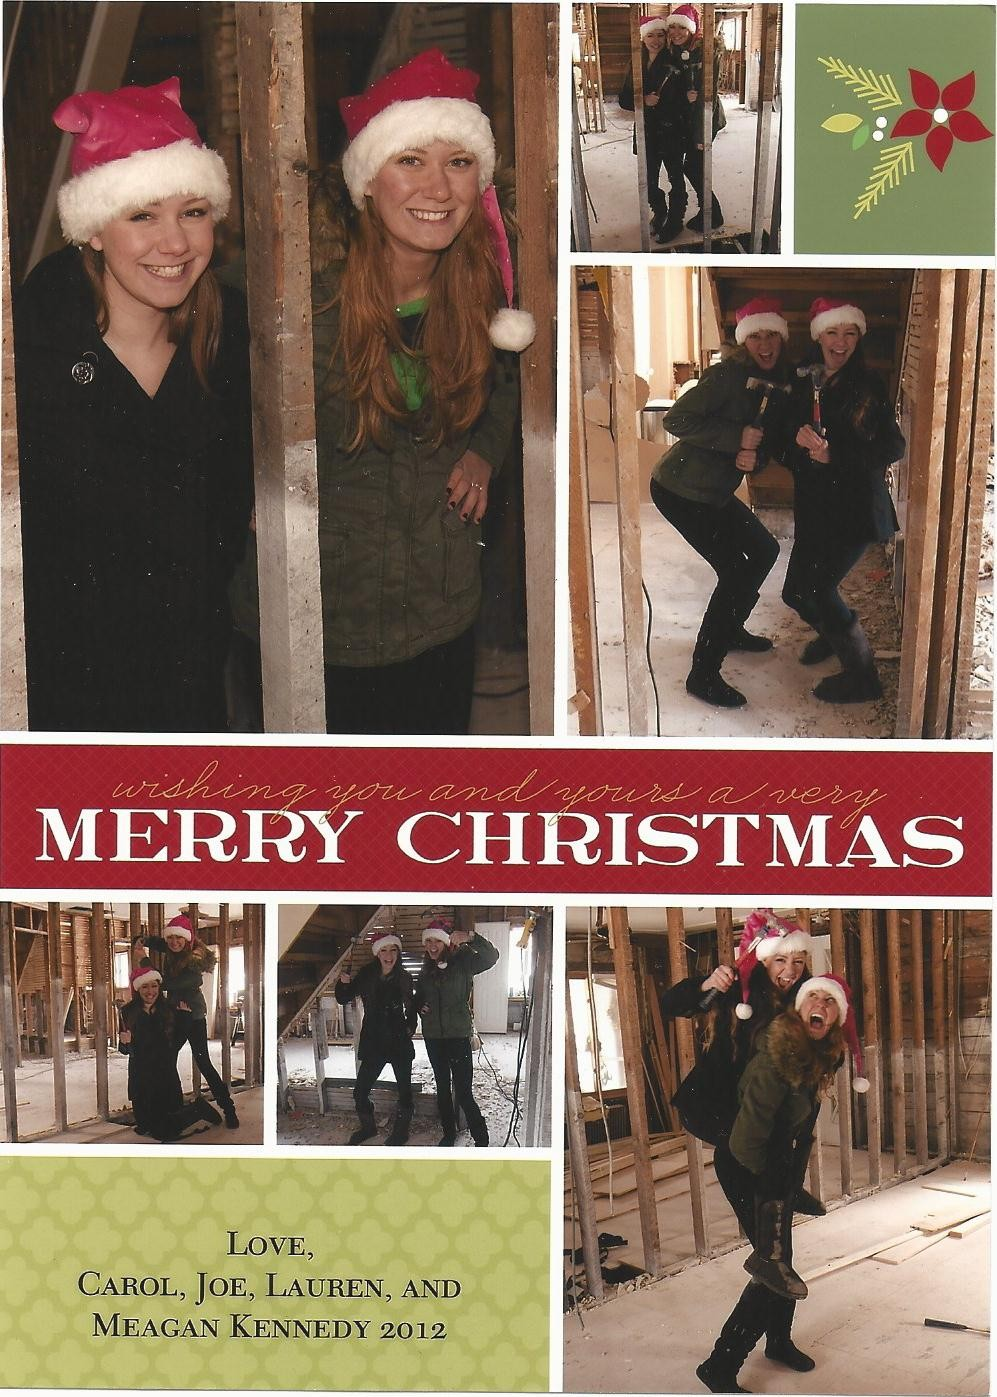 The Kennedy's 2012 Christmas card made light of the state of their home.